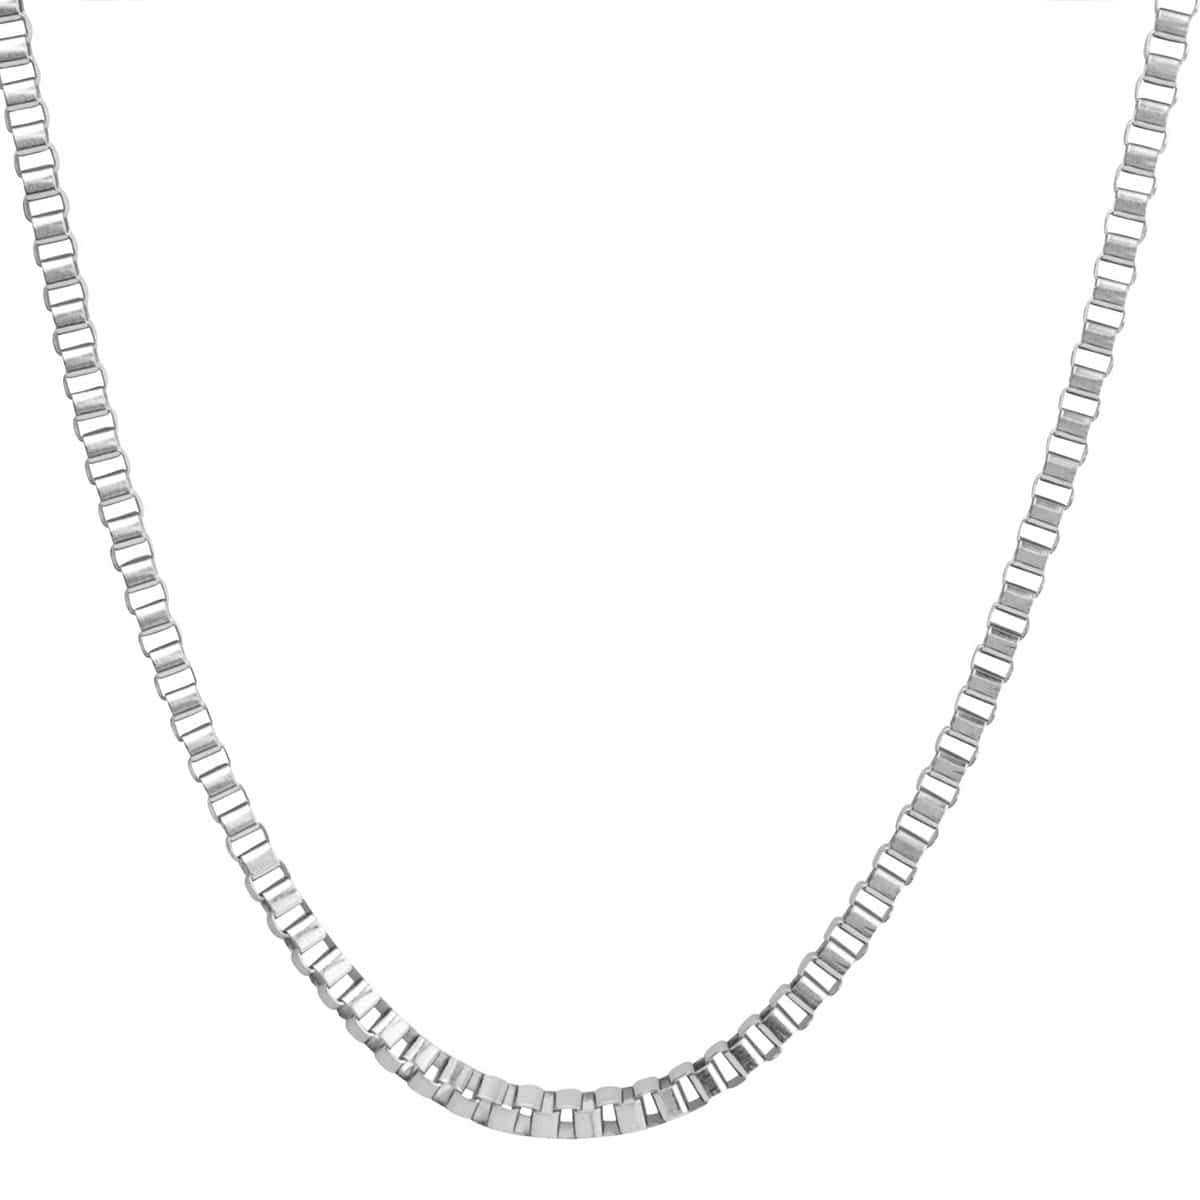 Silver Stainless Steel 4 mm Venetian Box Chain